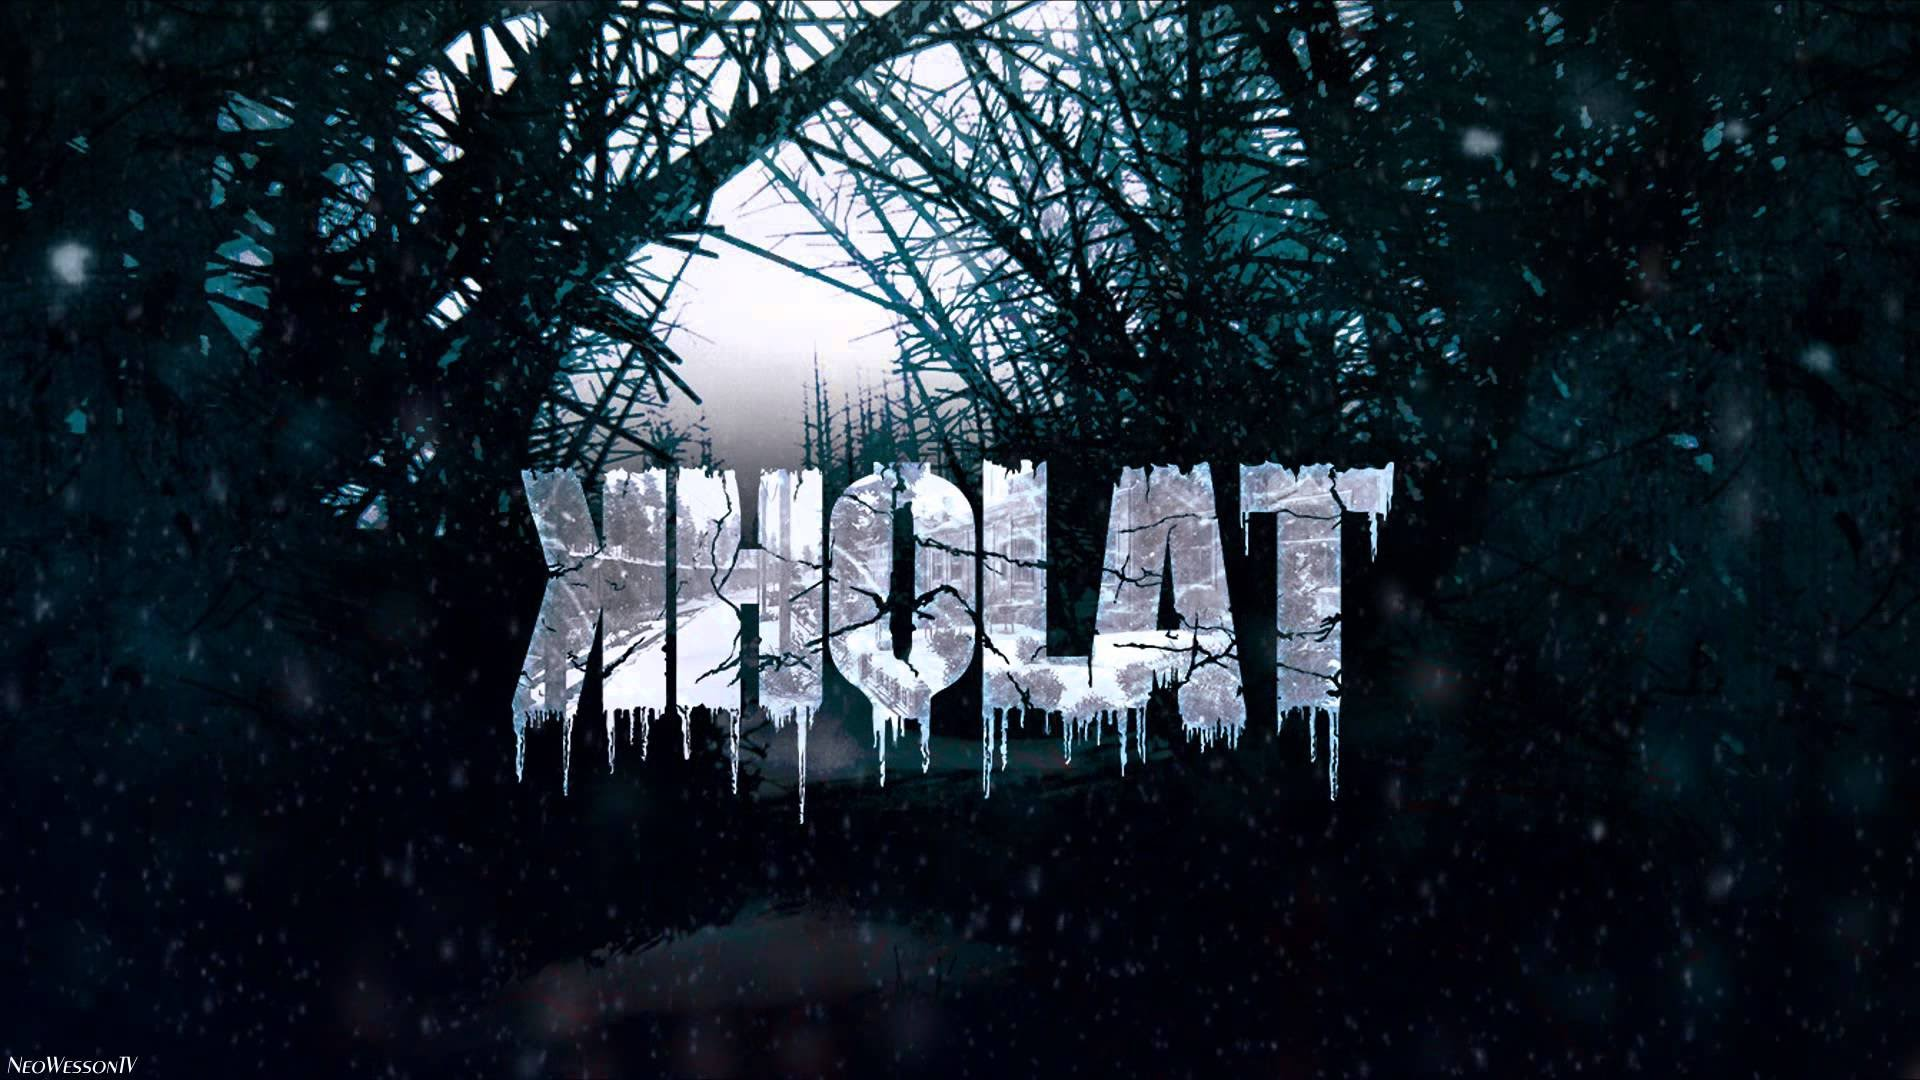 Kholat STEAM KEY| REG. FREE